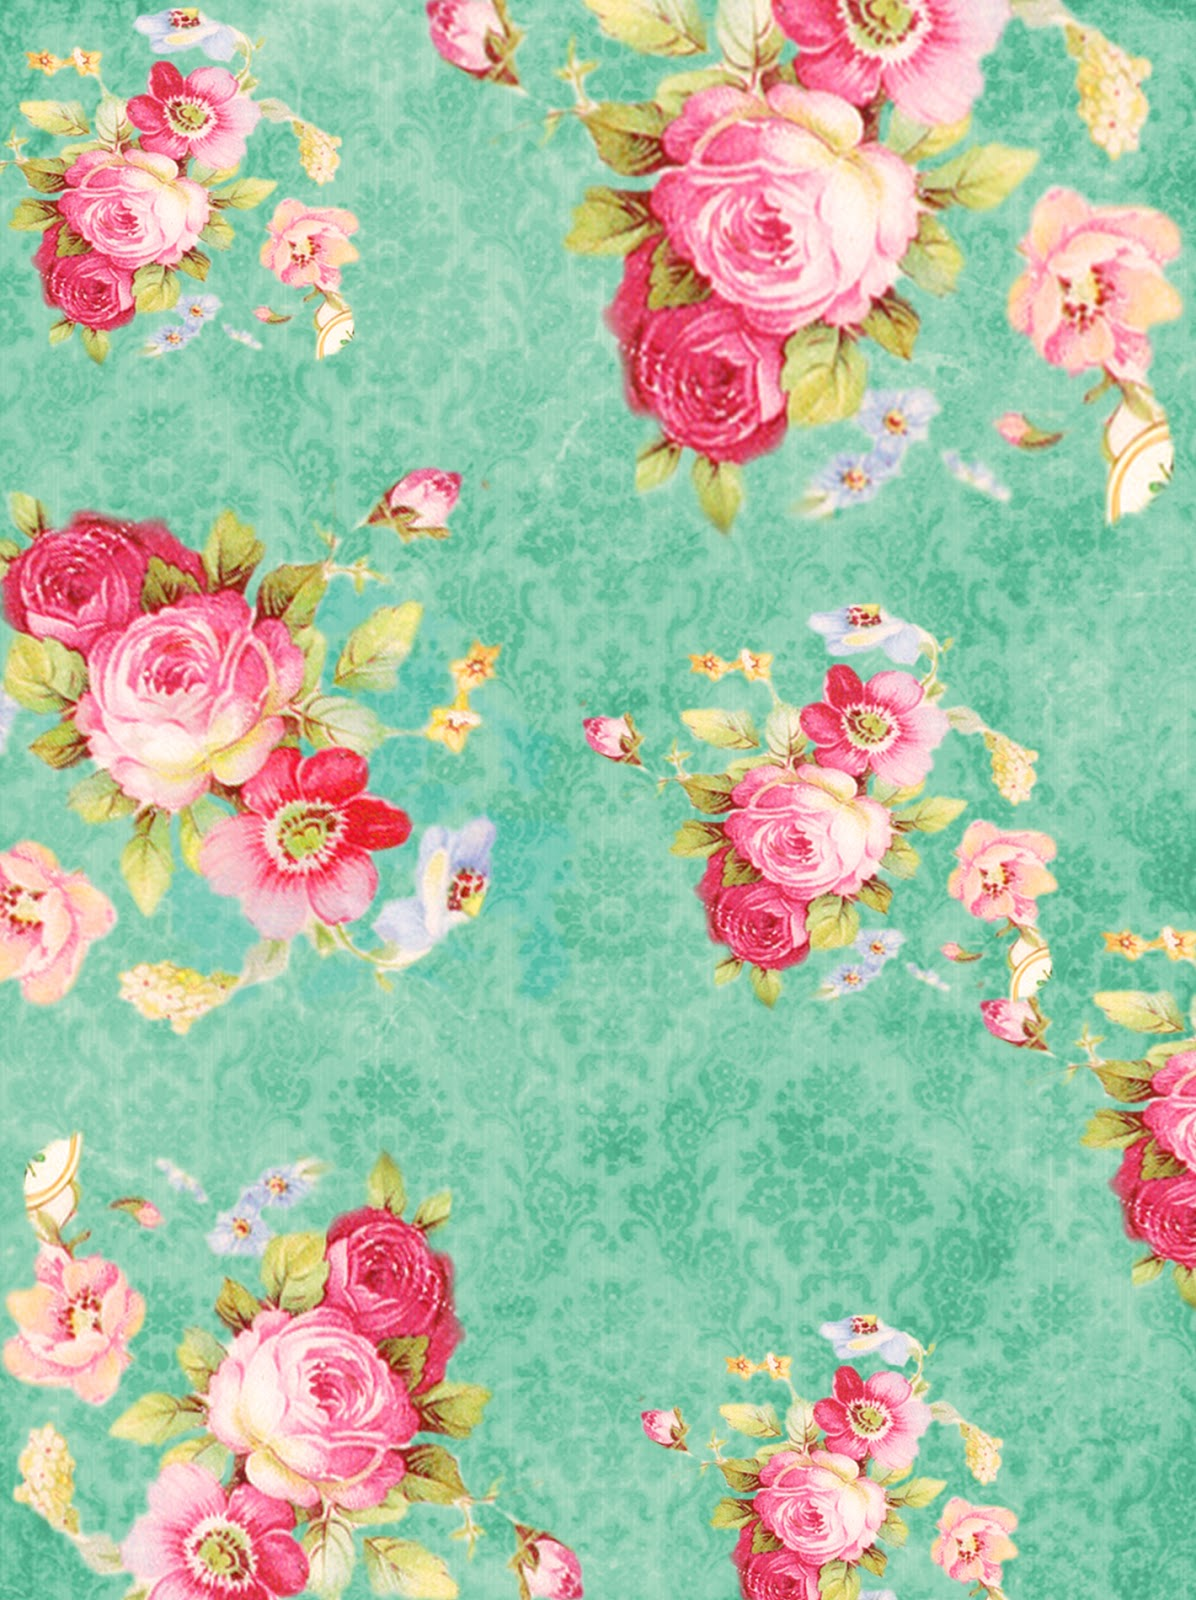 Vintage Pink And White Roses Vector Background - Vecteezy